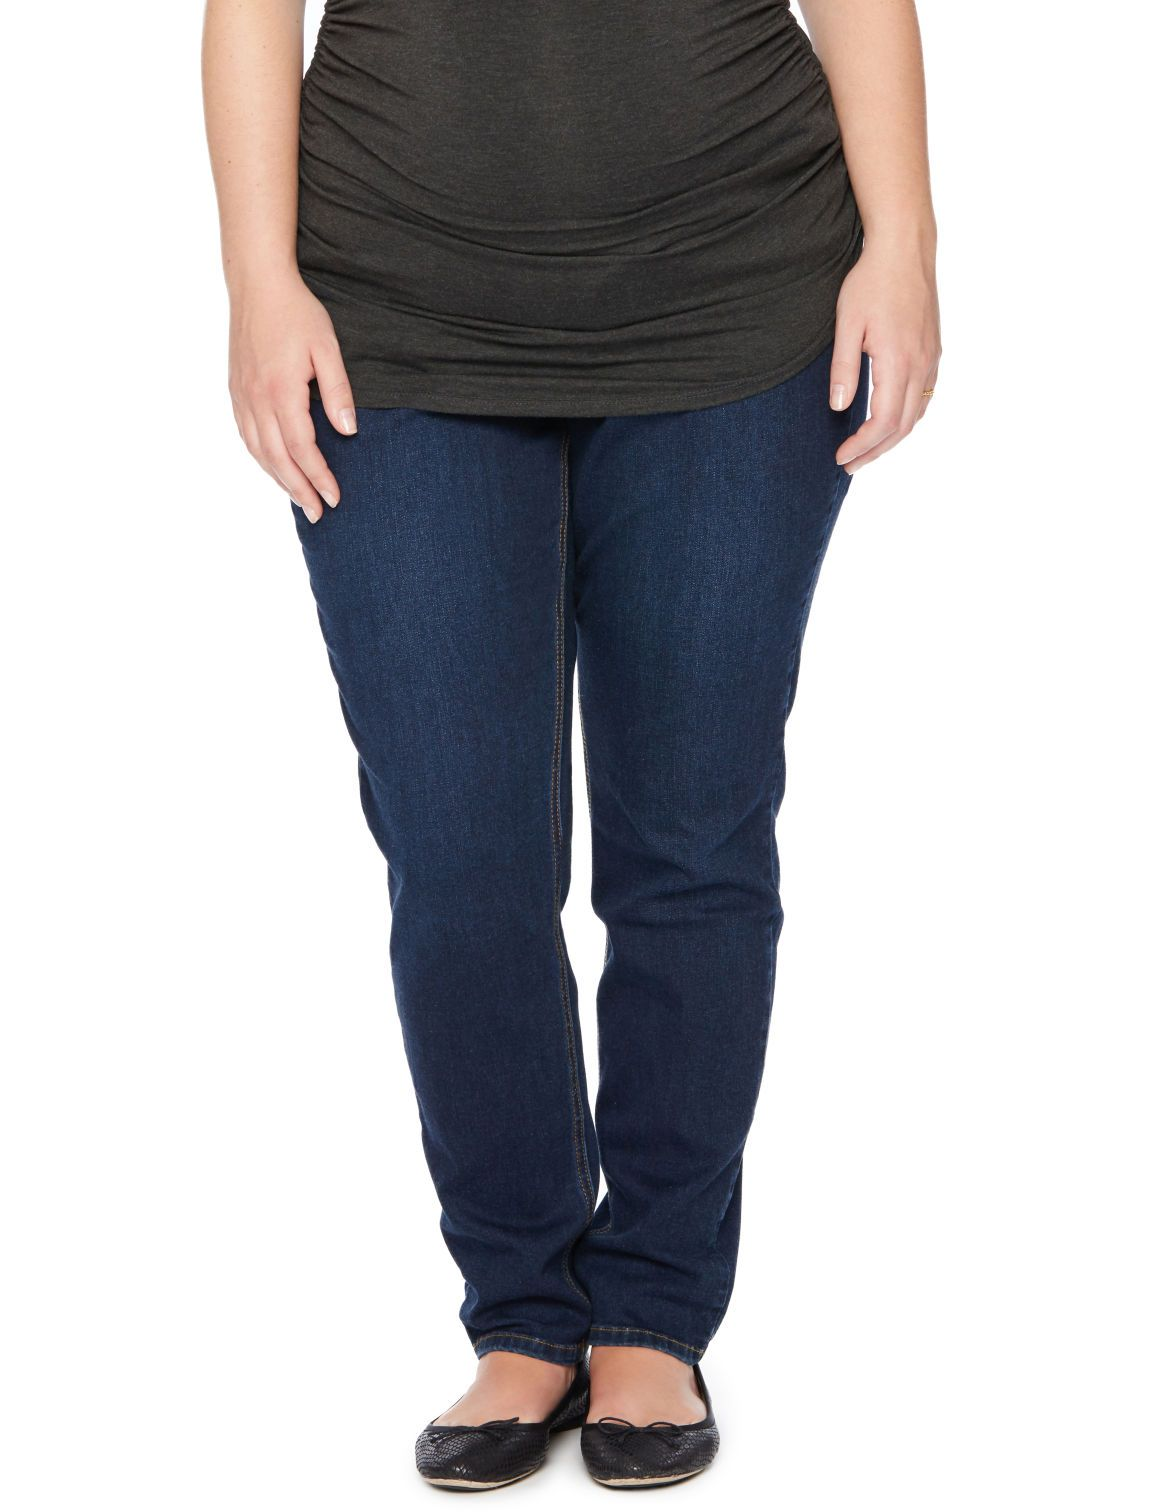 0150a5e459d82 Plus size Secret Fit Belly 5 pocket skinny leg maternity jeans by Jessica  Simpson available at Destination Maternity